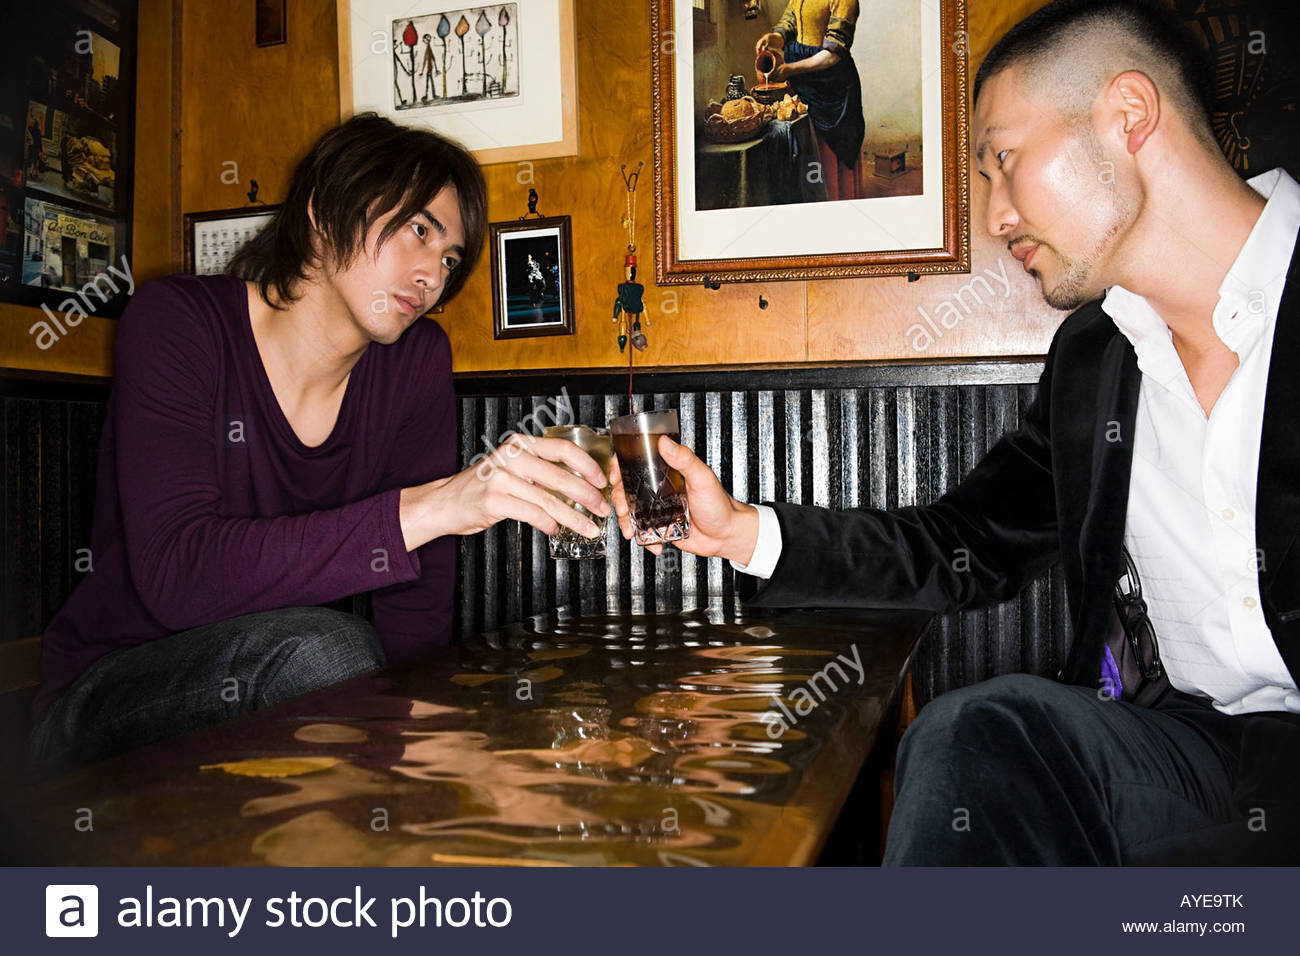 Japanese men toasting in a bar - Stock Image